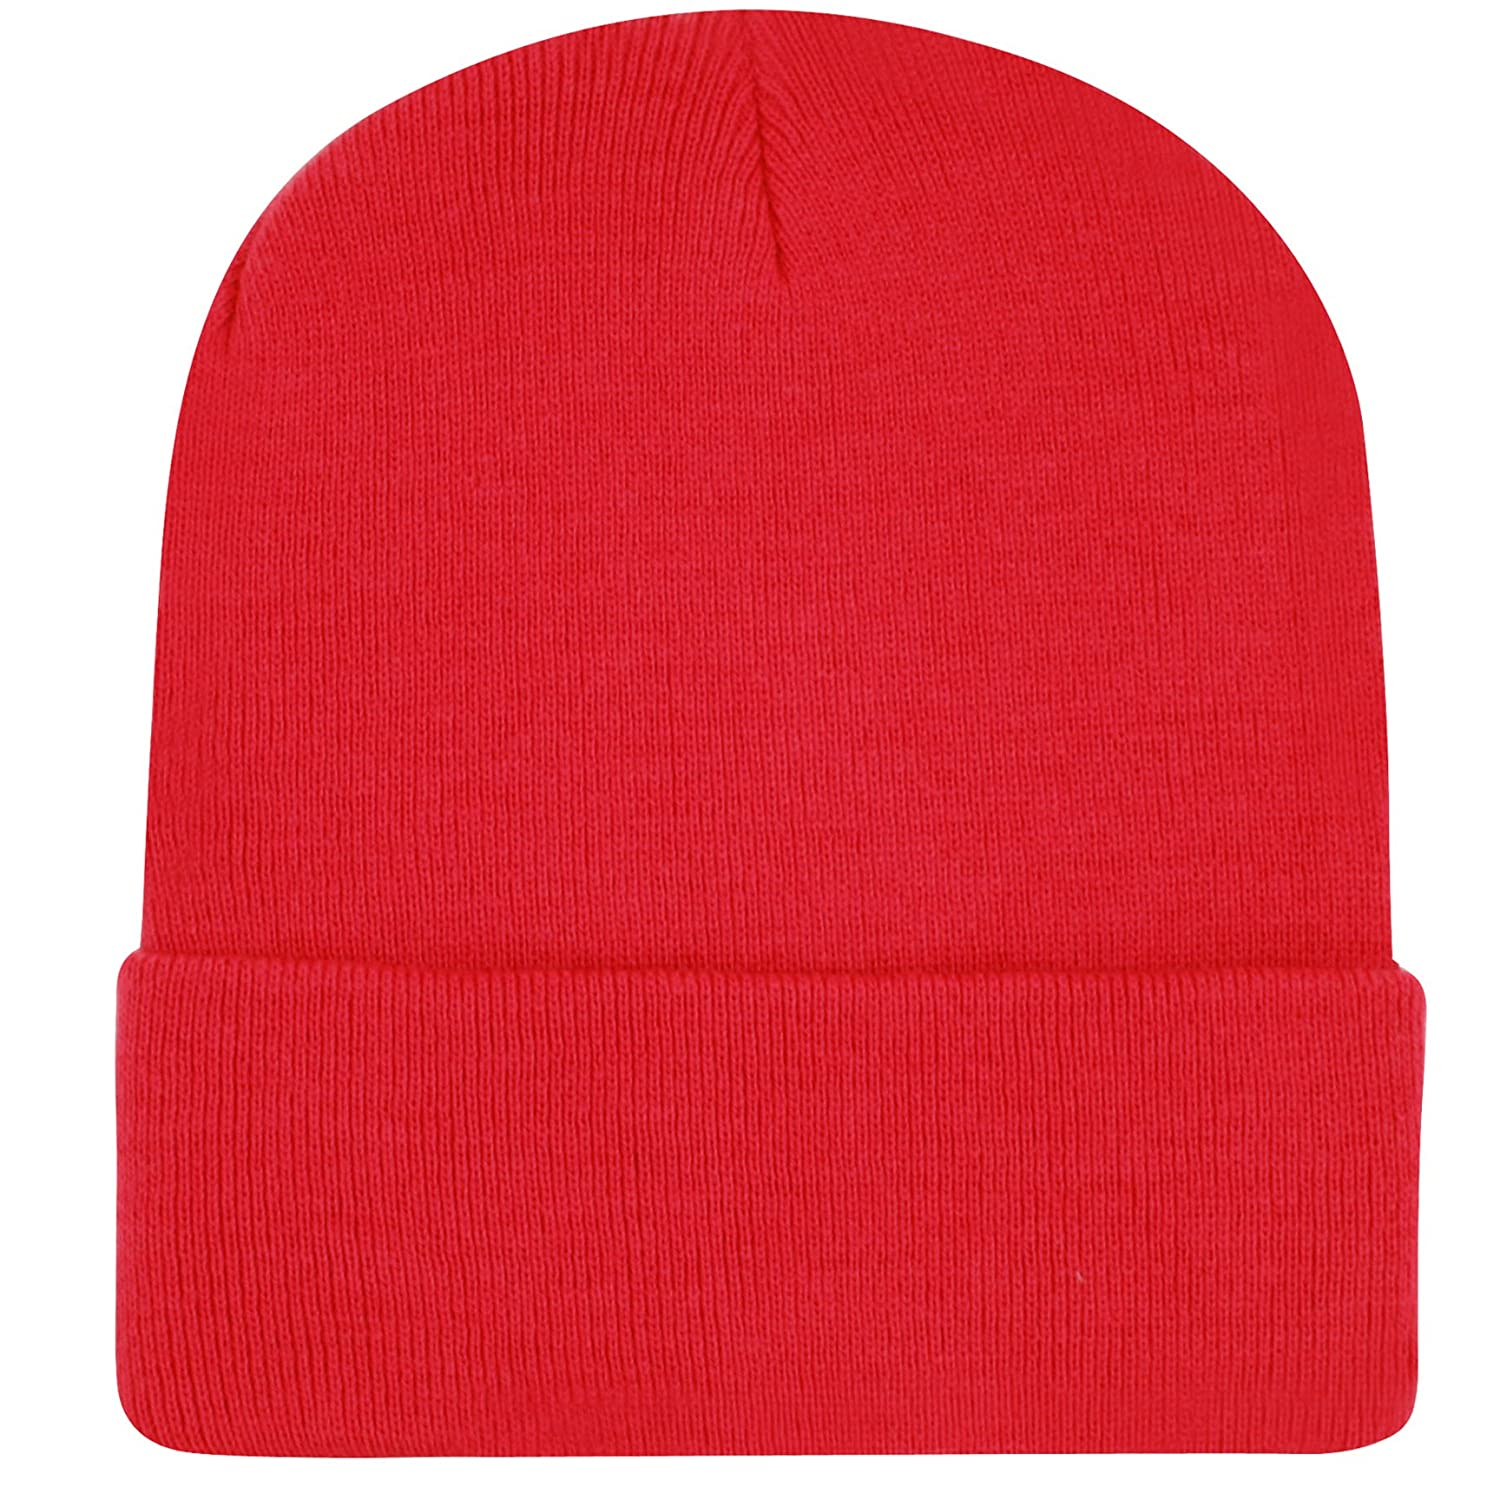 E-Flag Plain Knit Cap Cold Winter Cuff Beanie (22+ Colors Available) (A  RED) at Amazon Men s Clothing store  6203c2e77c4